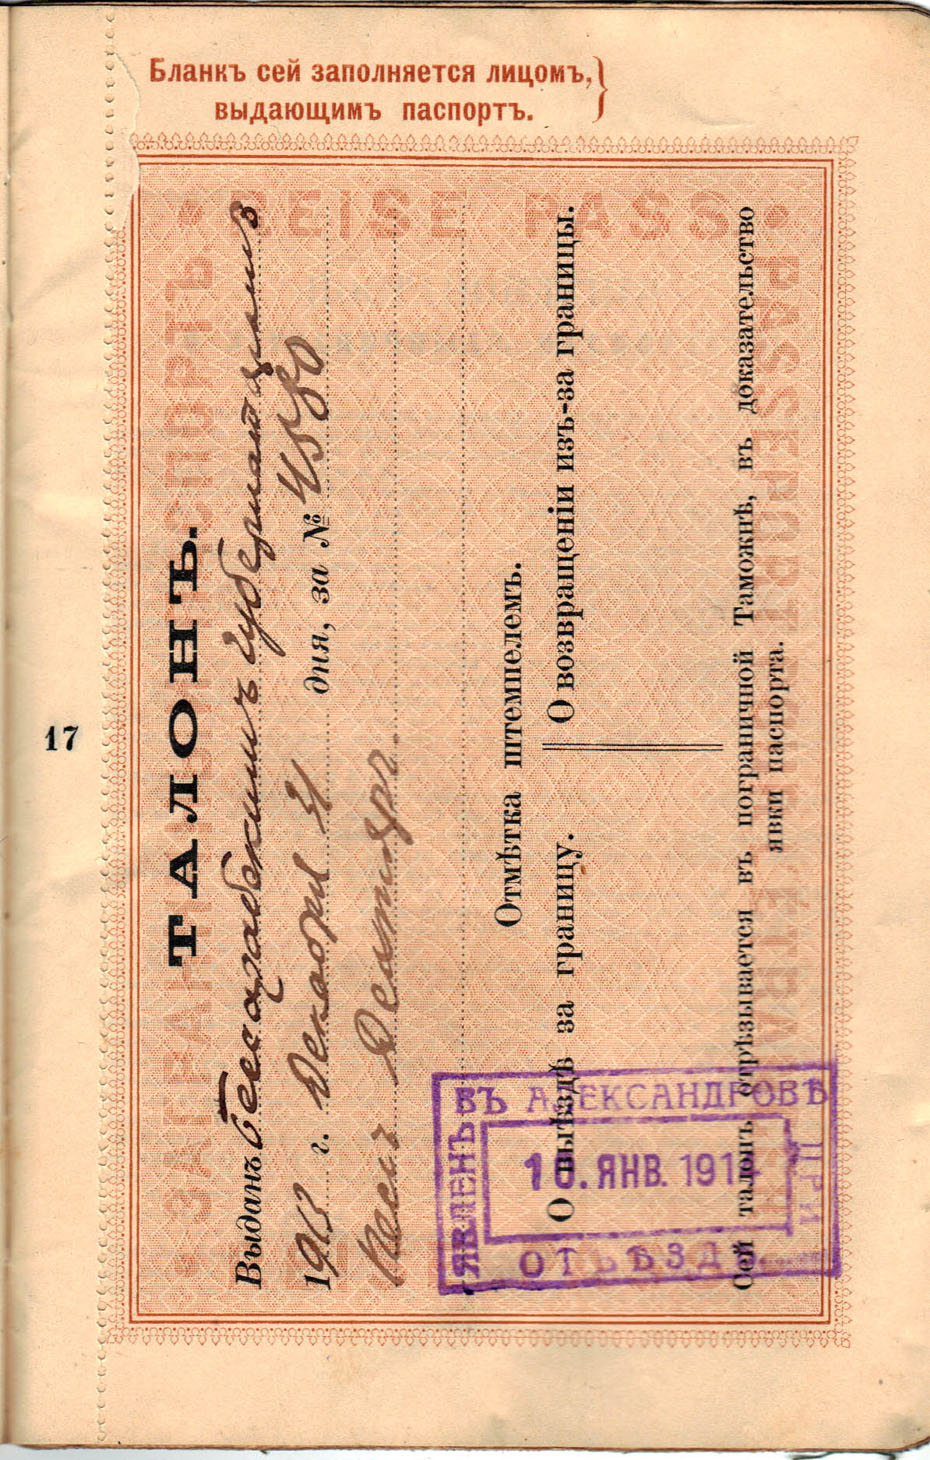 Polya's Russian Passport p17